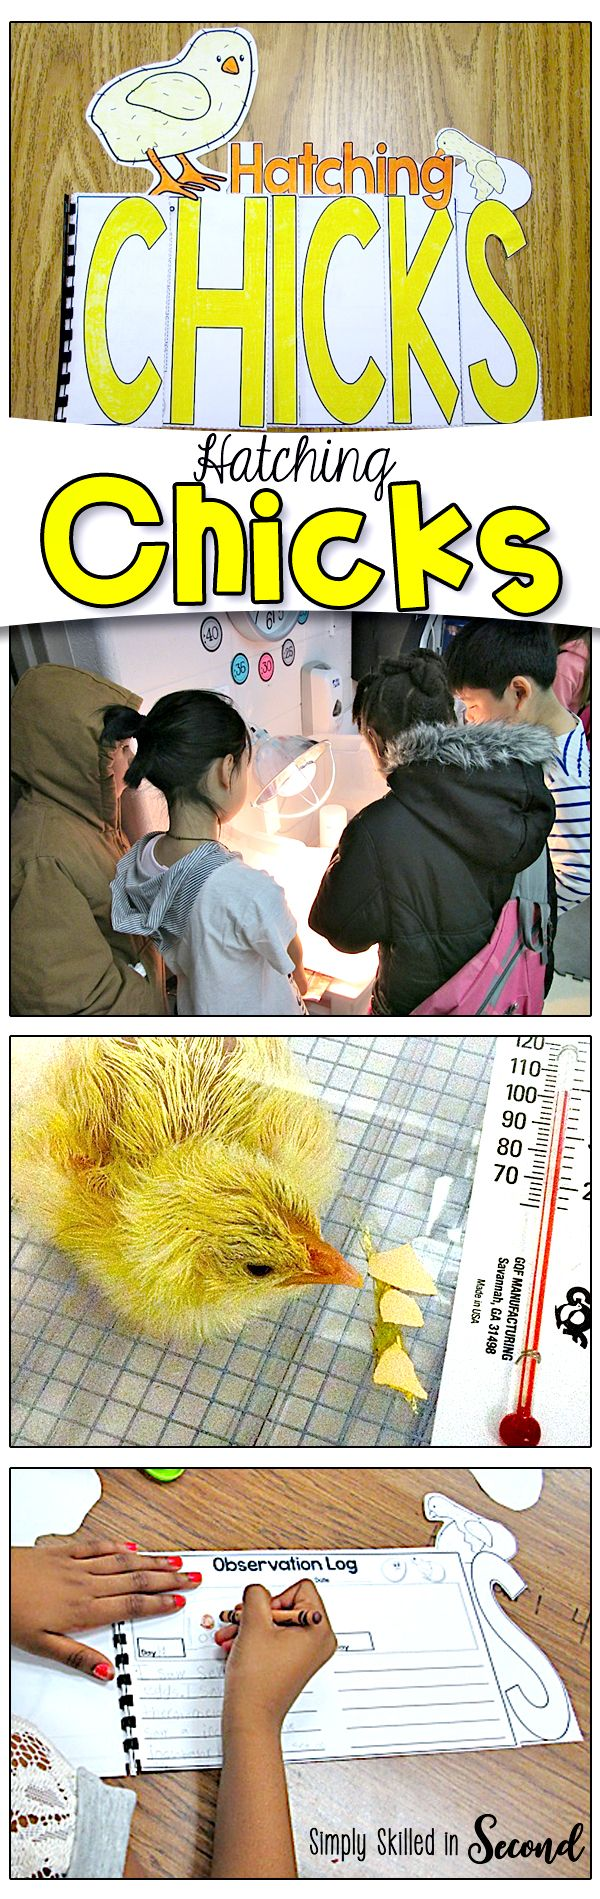 Hatching chicks in the classroom is an incredible experience for children. Check out this post for some fun activities and videos to share with your students.